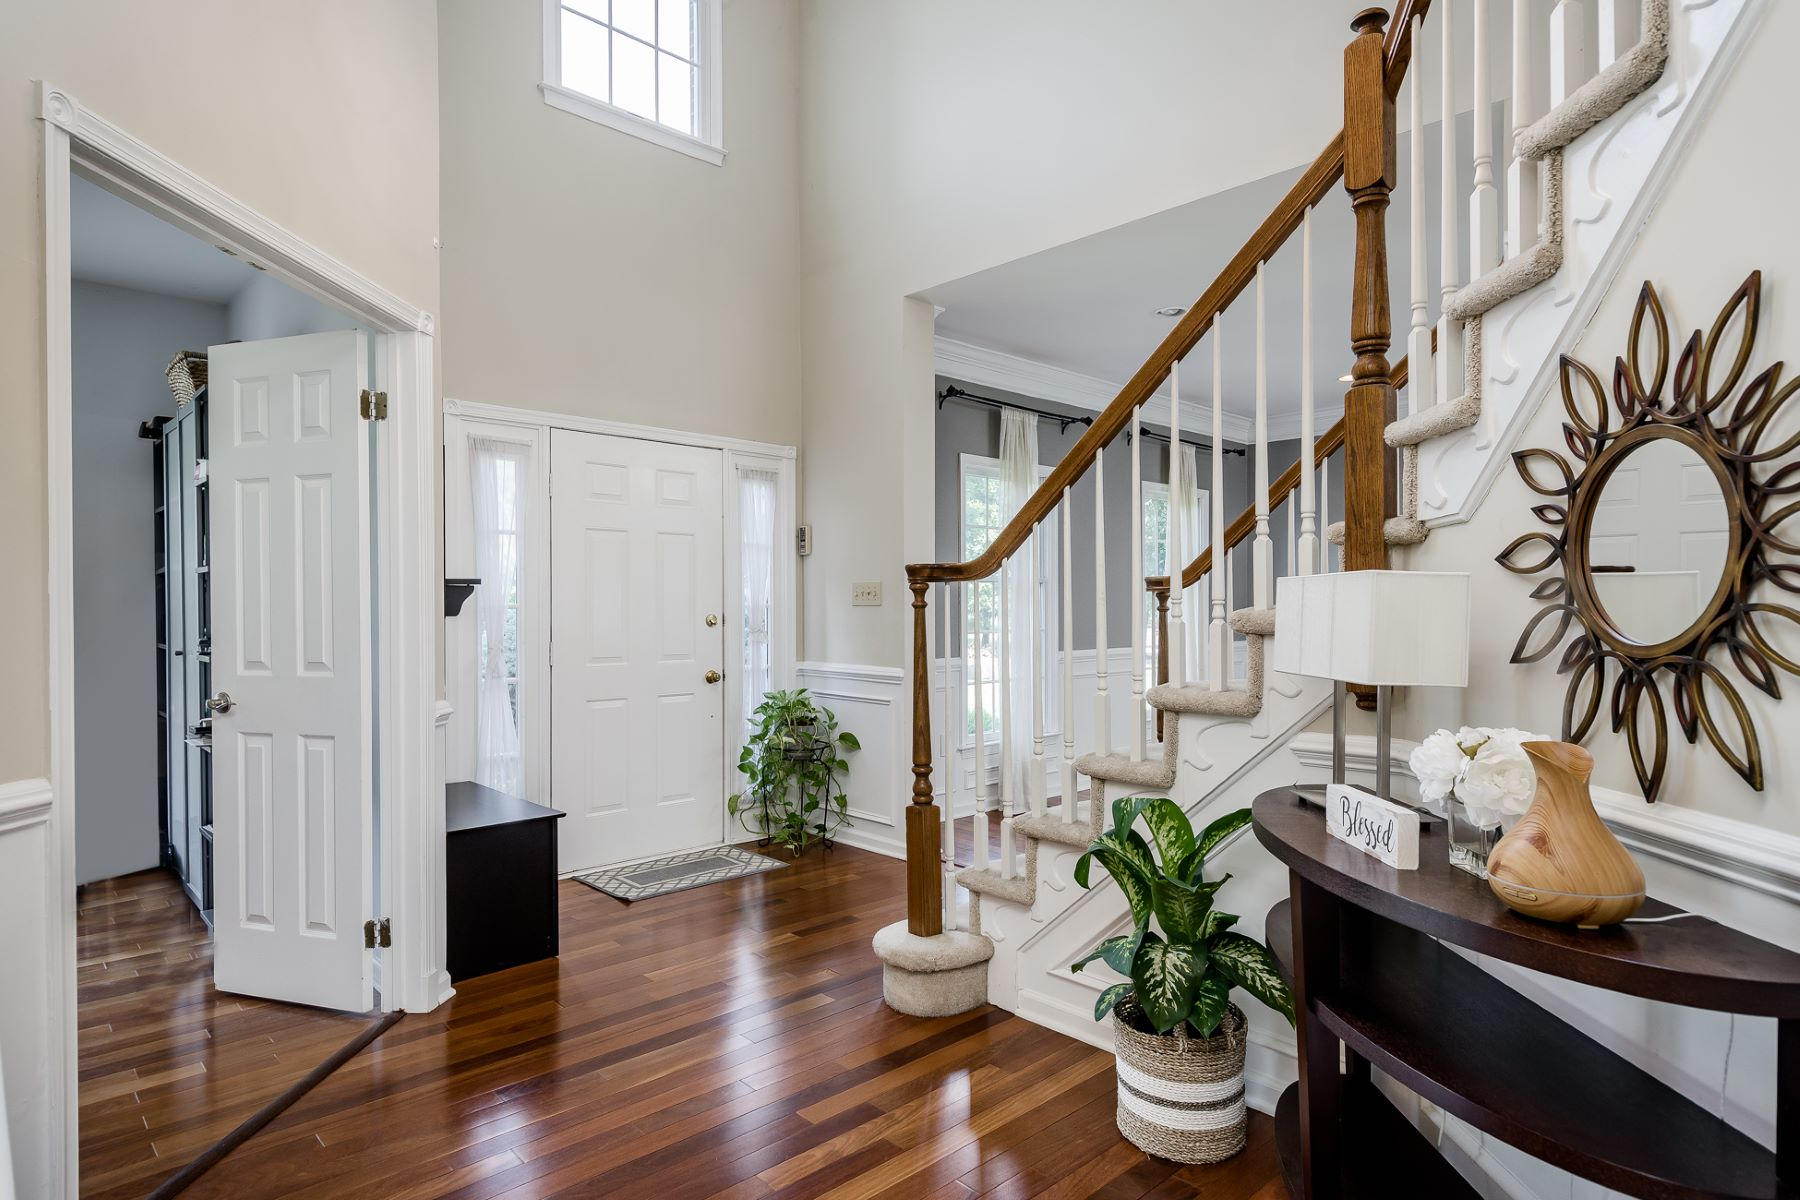 Additional photo for property listing at A Fresh Take on Sophistication 40 Reed Drive South, West Windsor, New Jersey 08550 United States